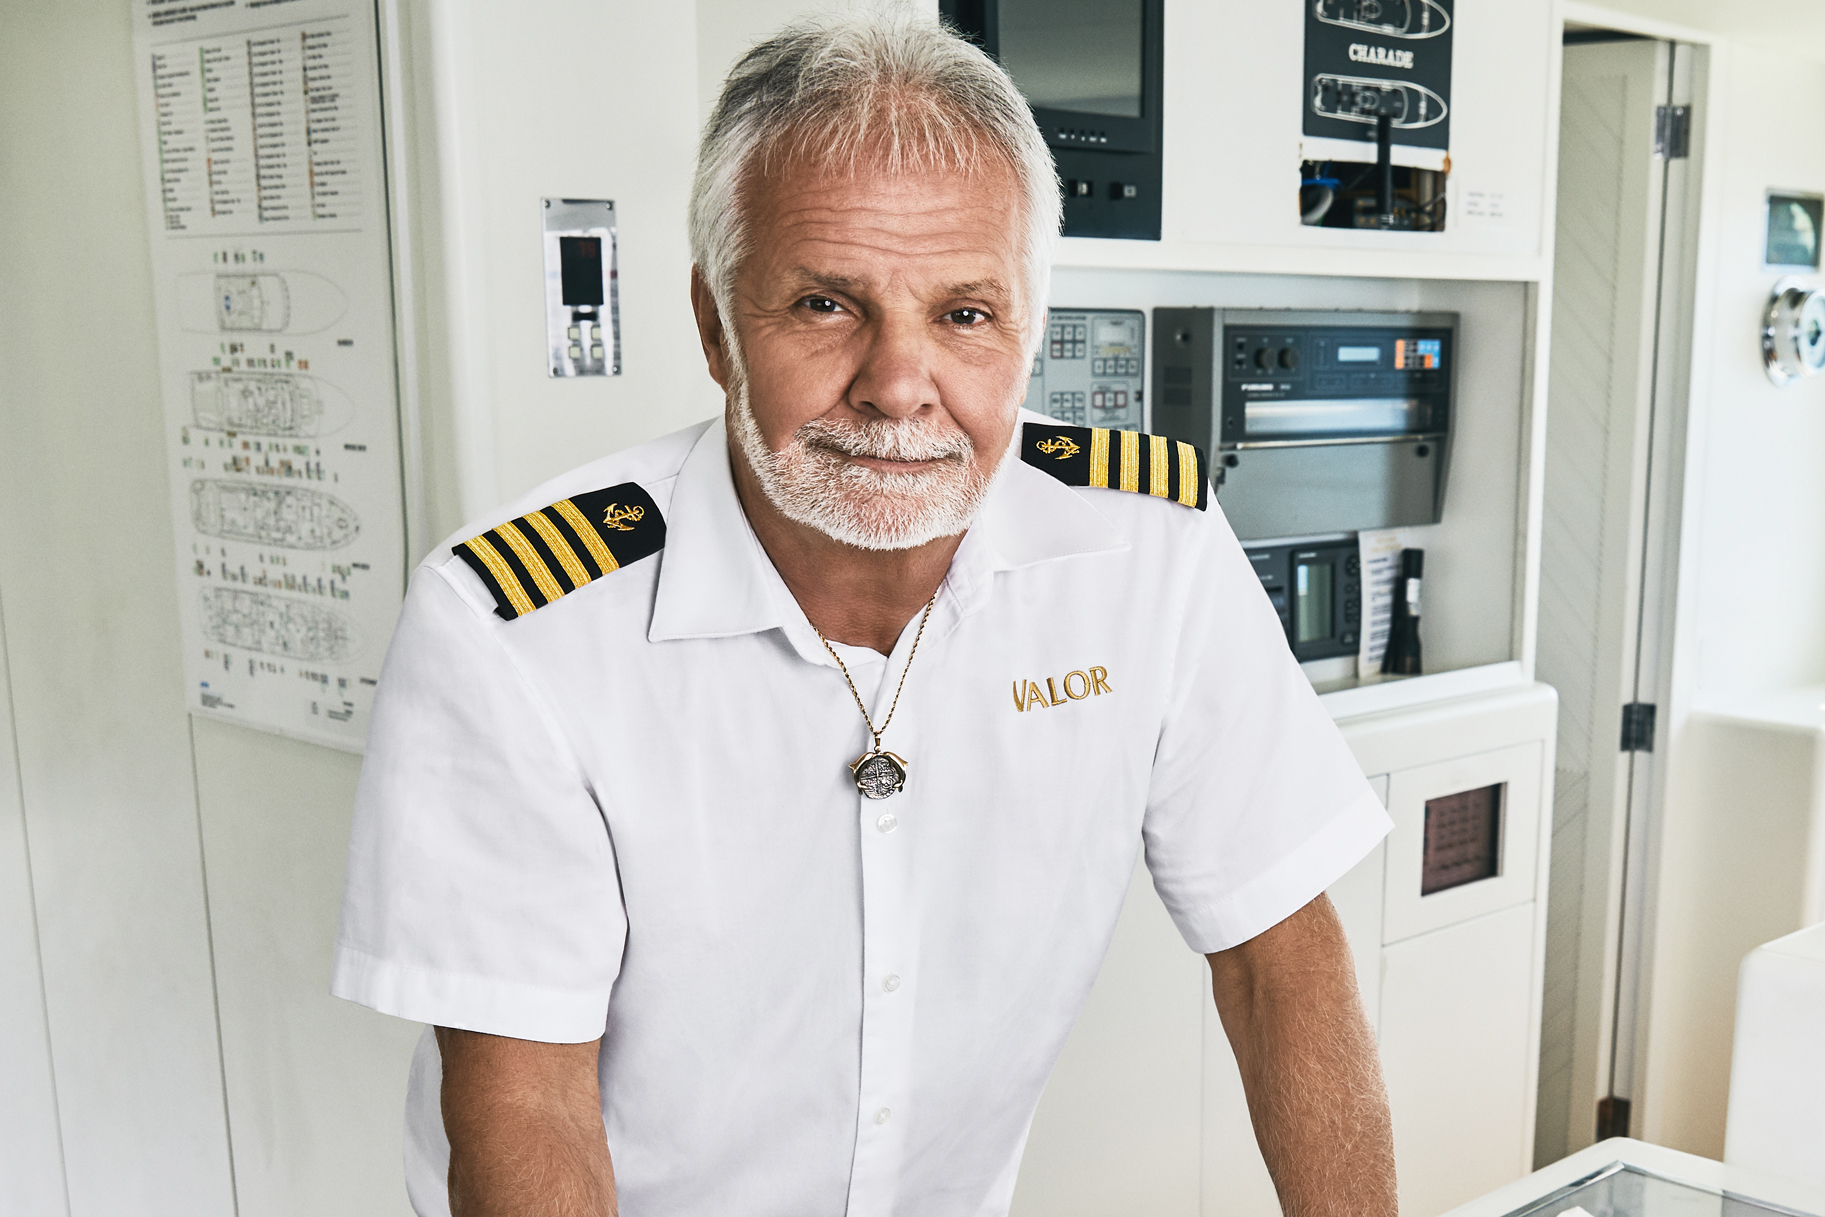 Captain Lee COVID-19 Vaccine